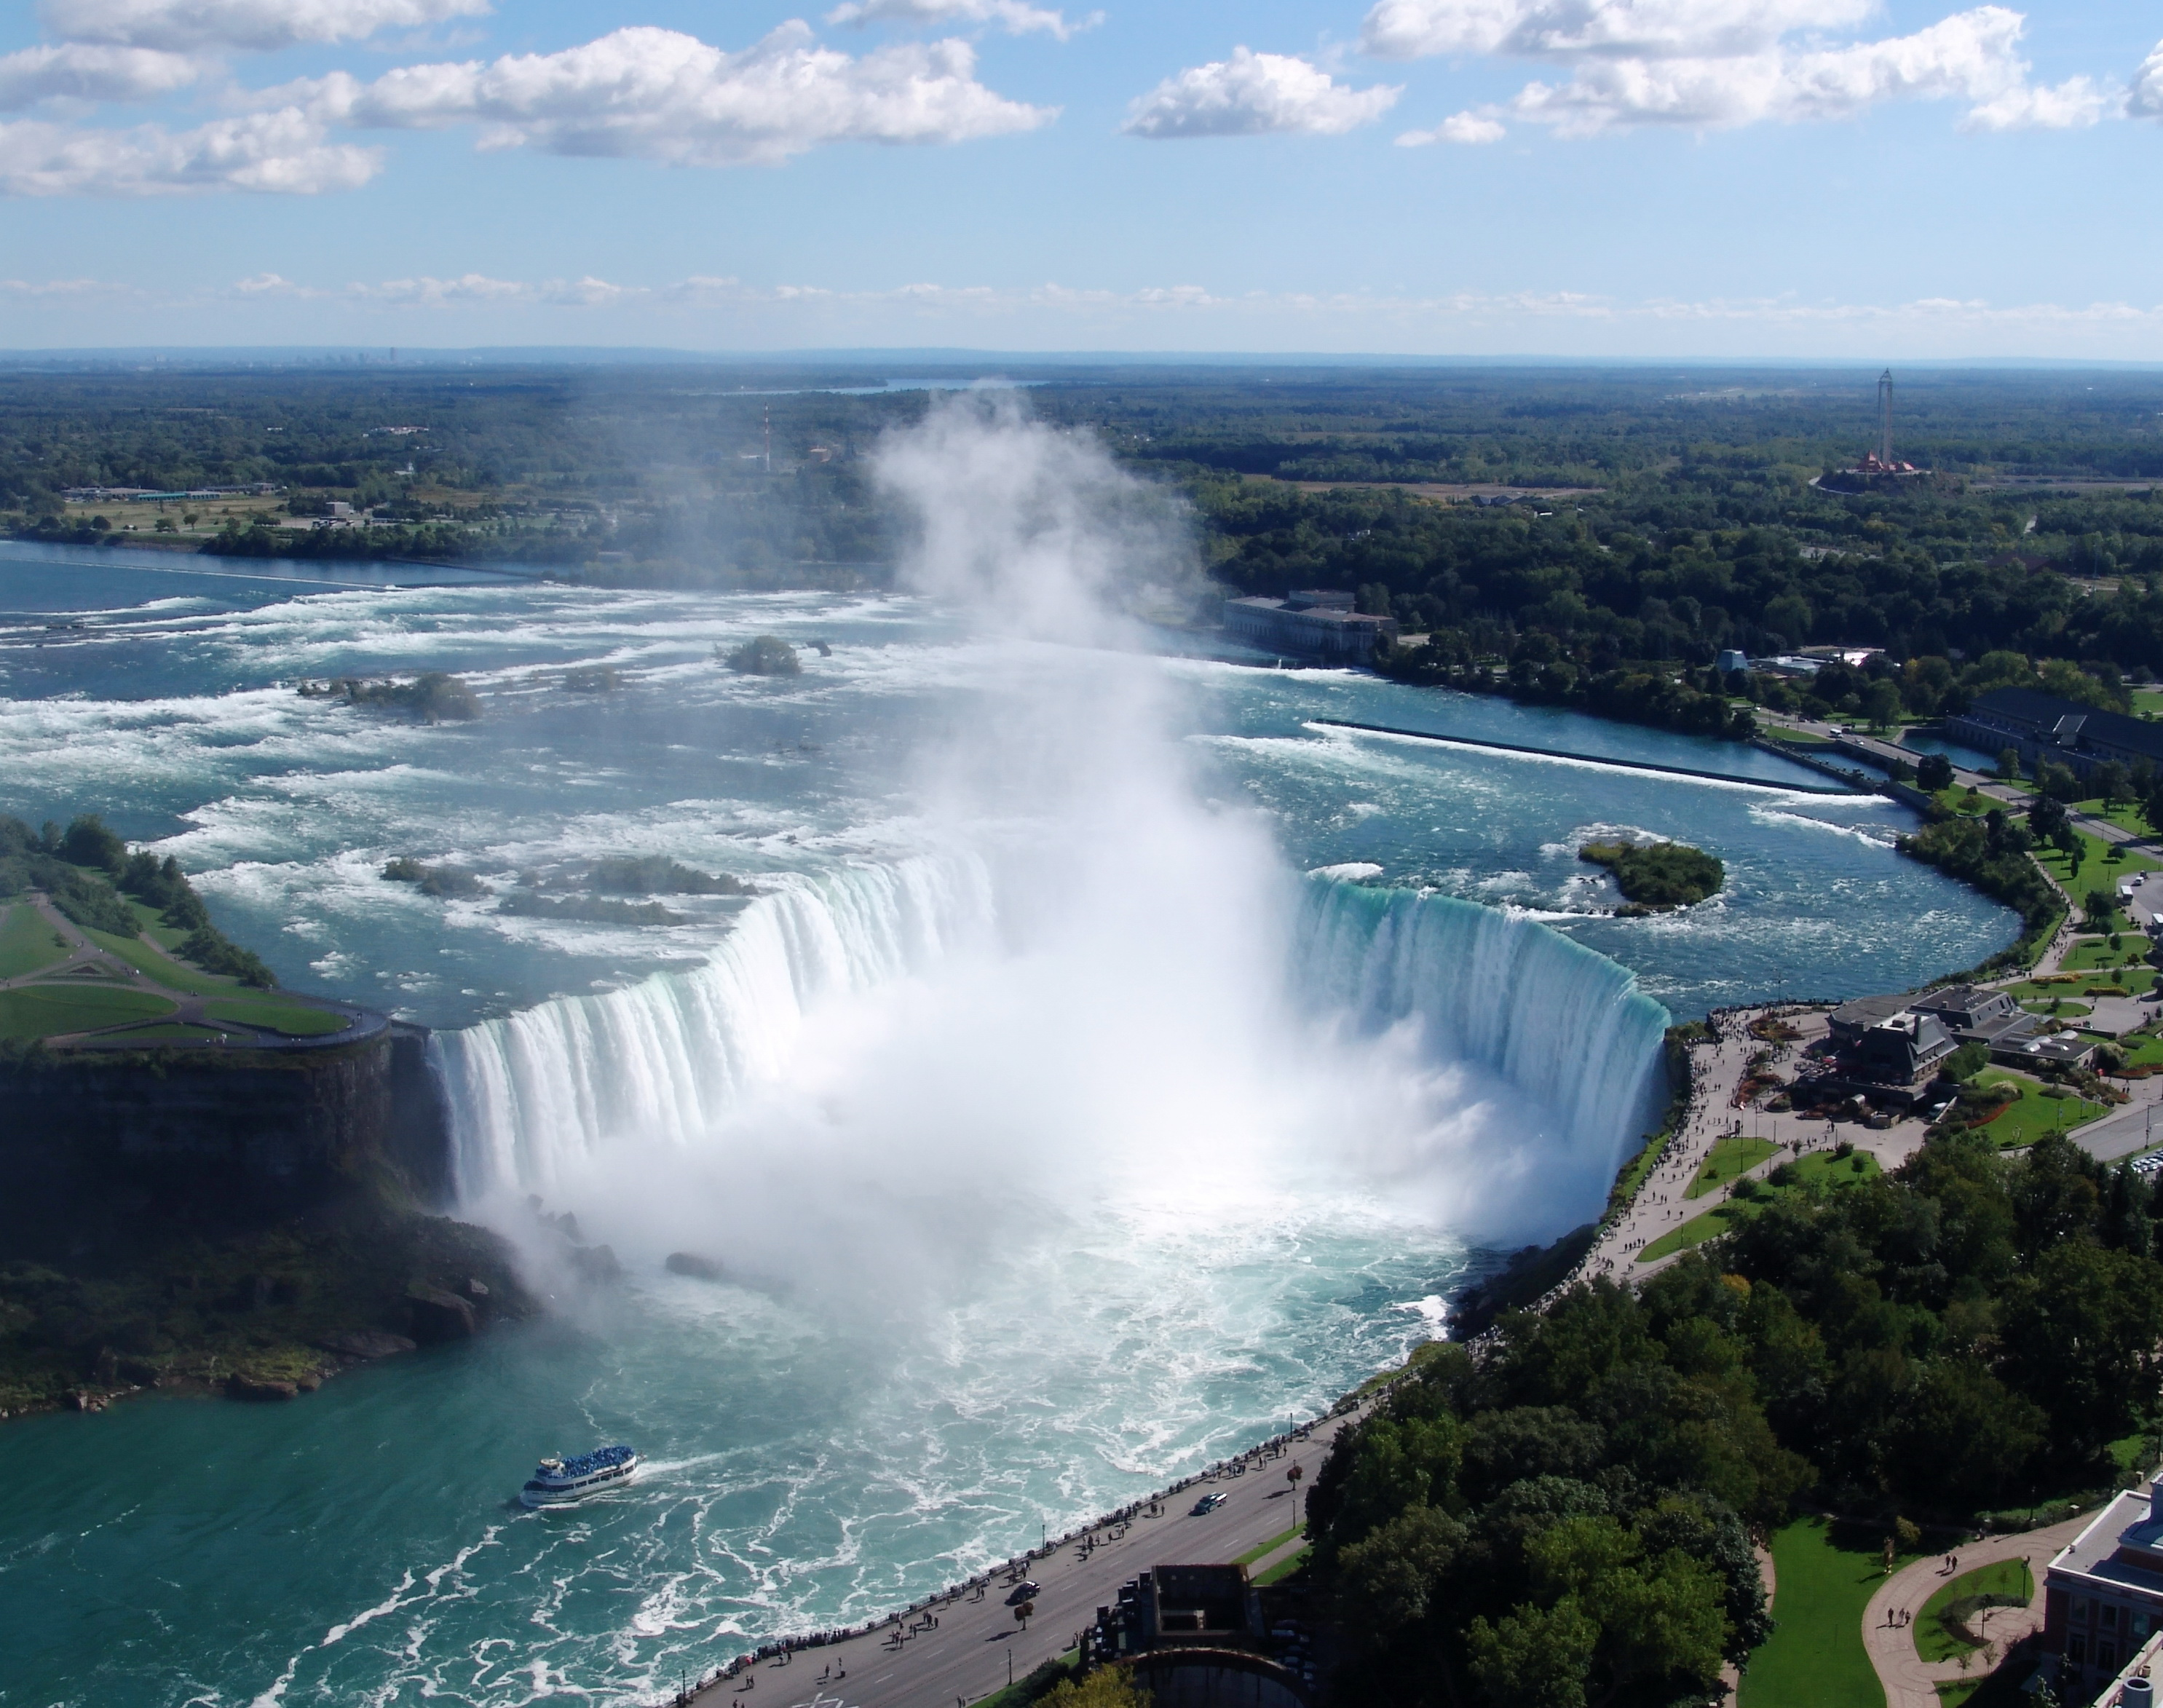 Niagara Falls: description, photo, where it is located 35